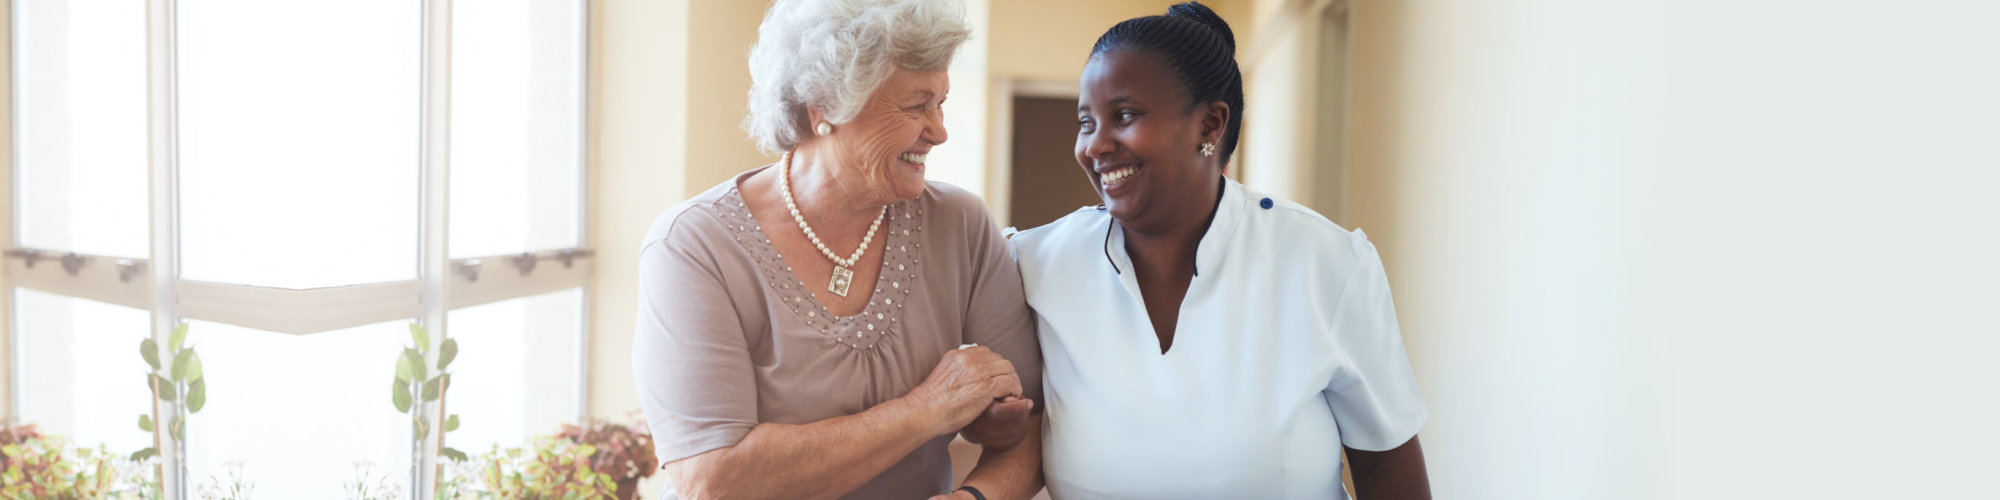 Portrait of smiling home caregiver and senior woman walking together through a corridor